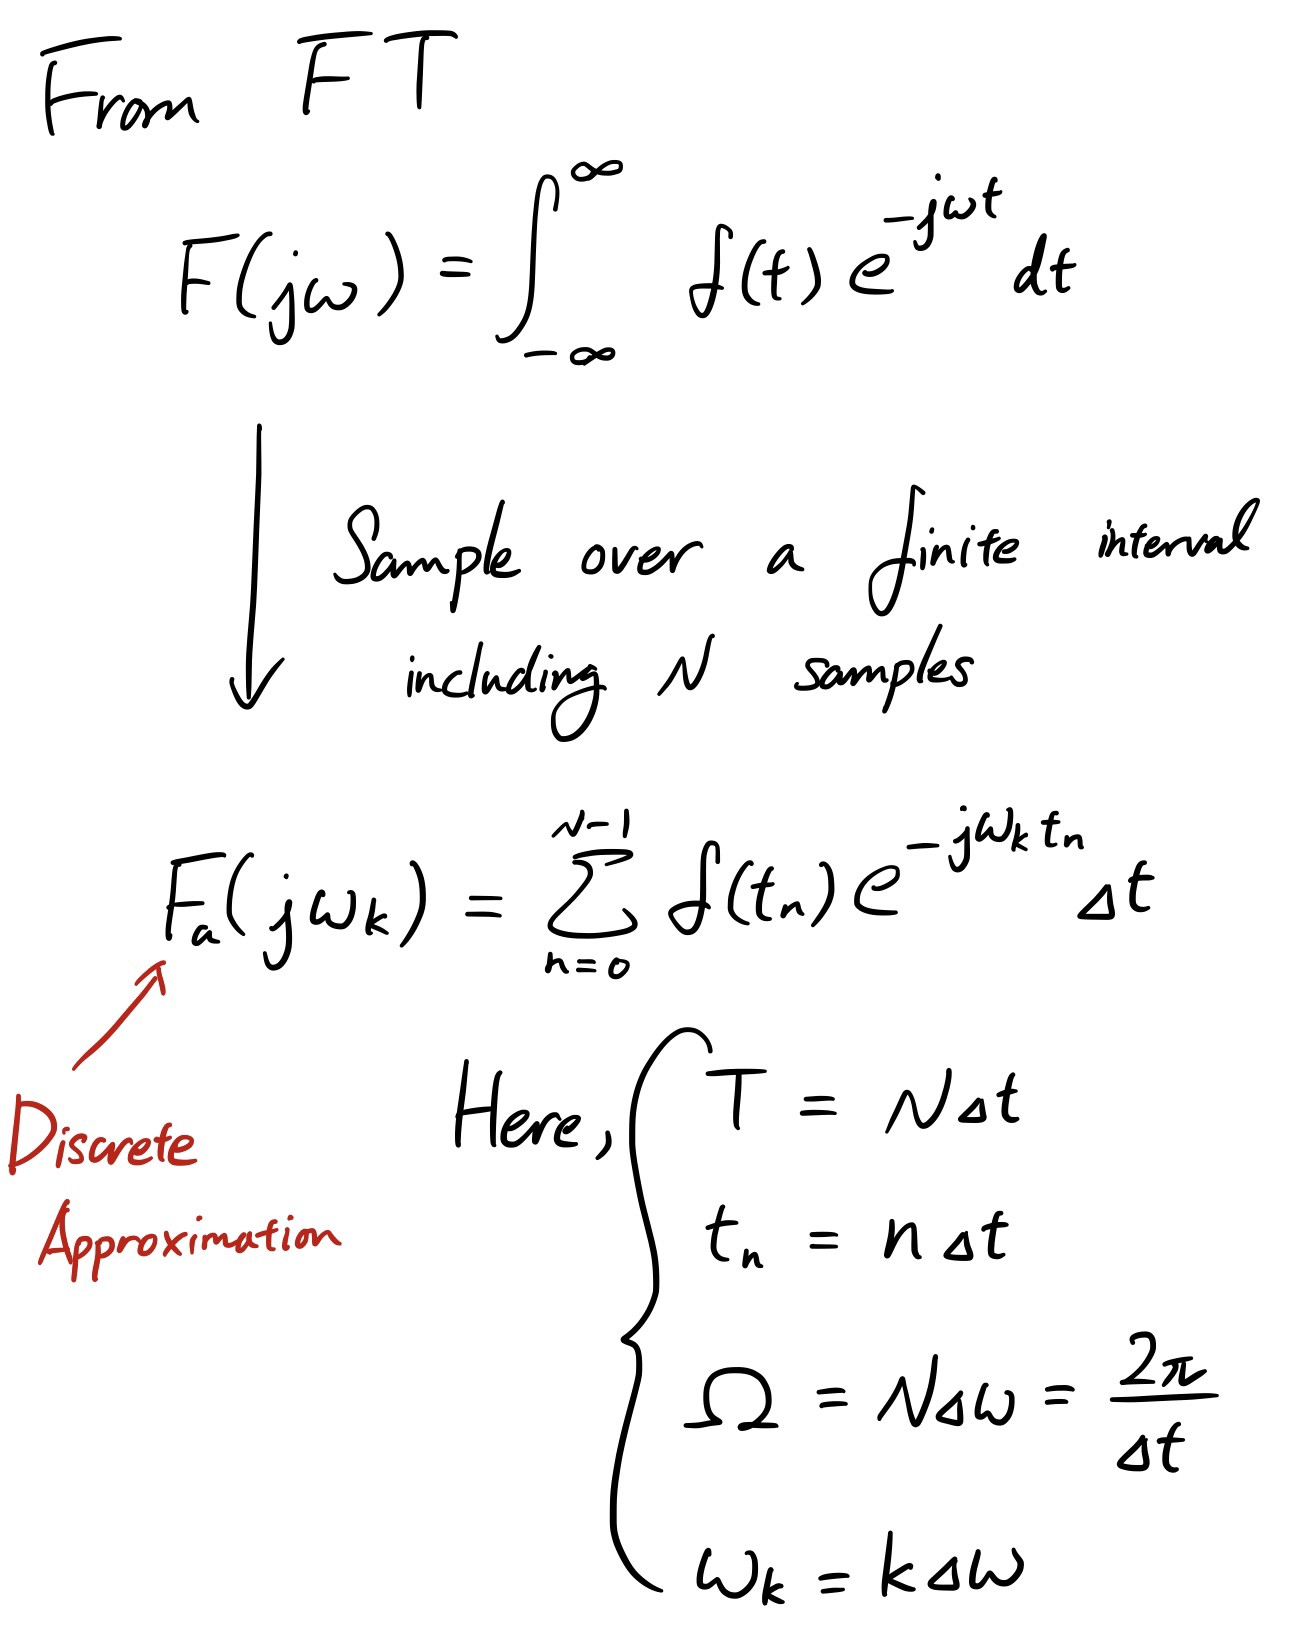 Fourier Transform 101 — Part 4: Discrete Fourier Transform